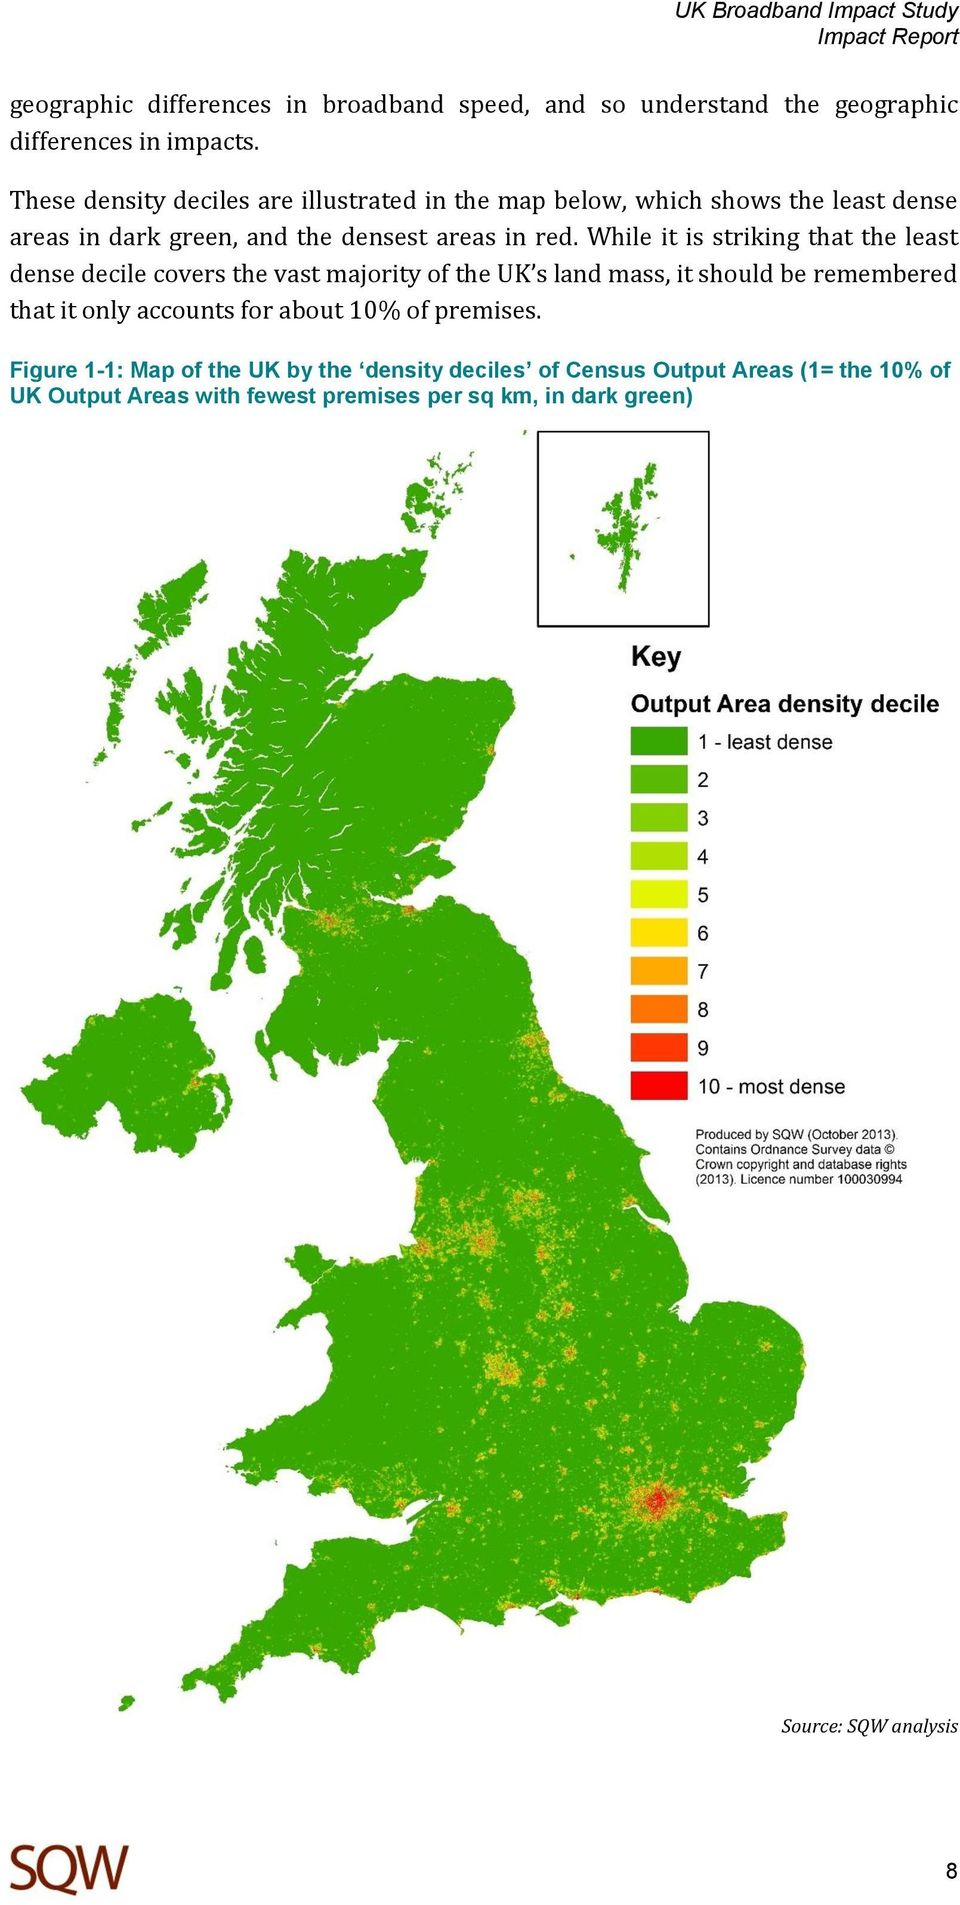 While it is striking that the least dense decile covers the vast majority of the UK s land mass, it should be remembered that it only accounts